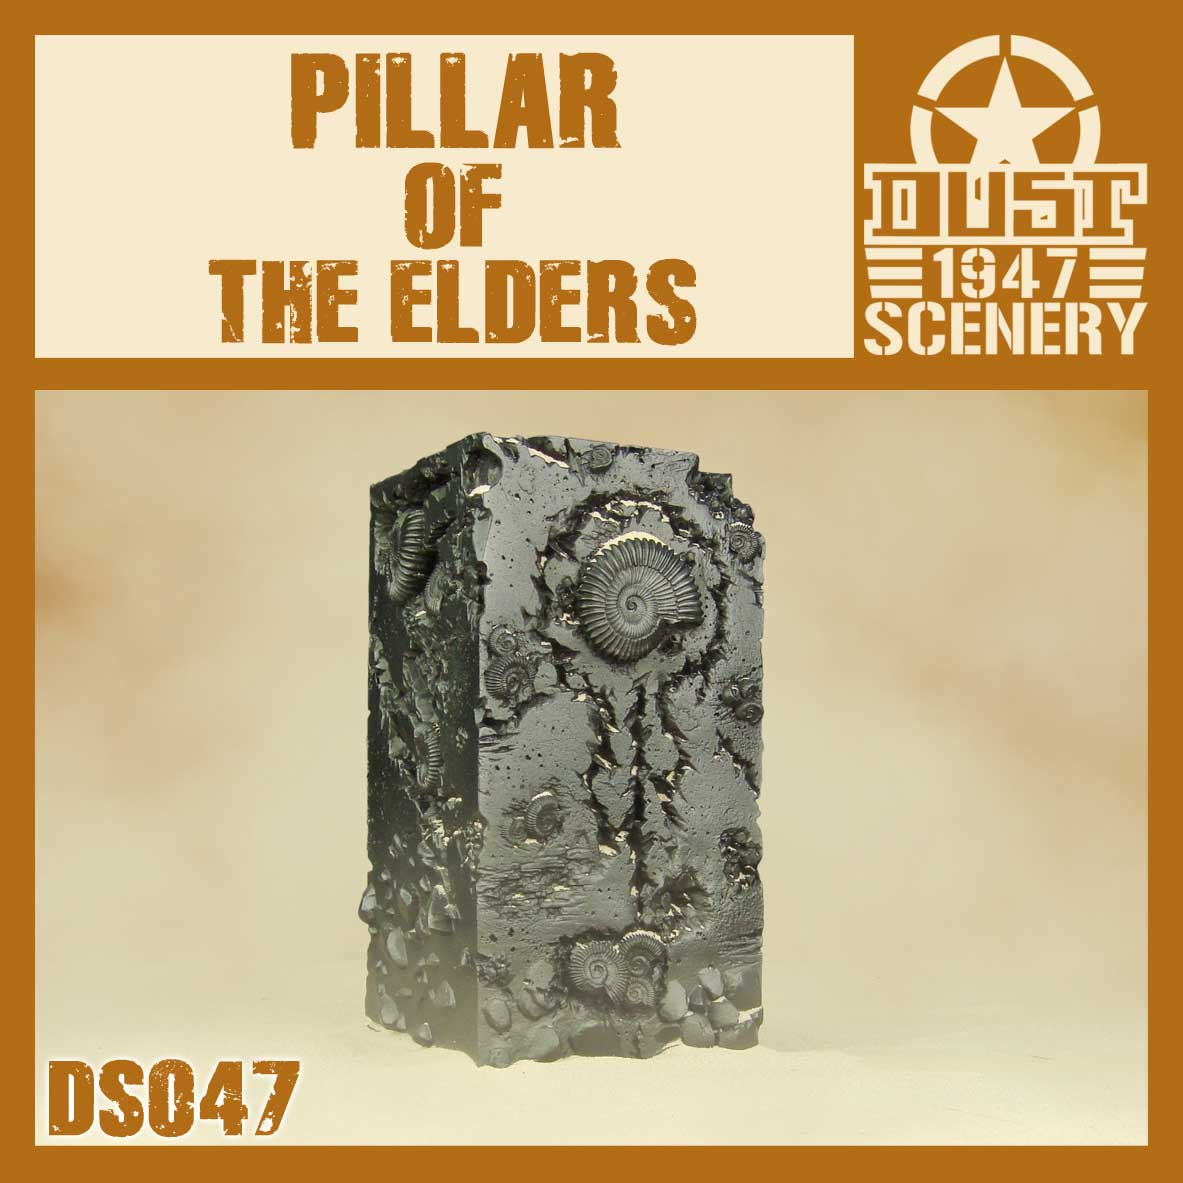 Pillar of the Elders